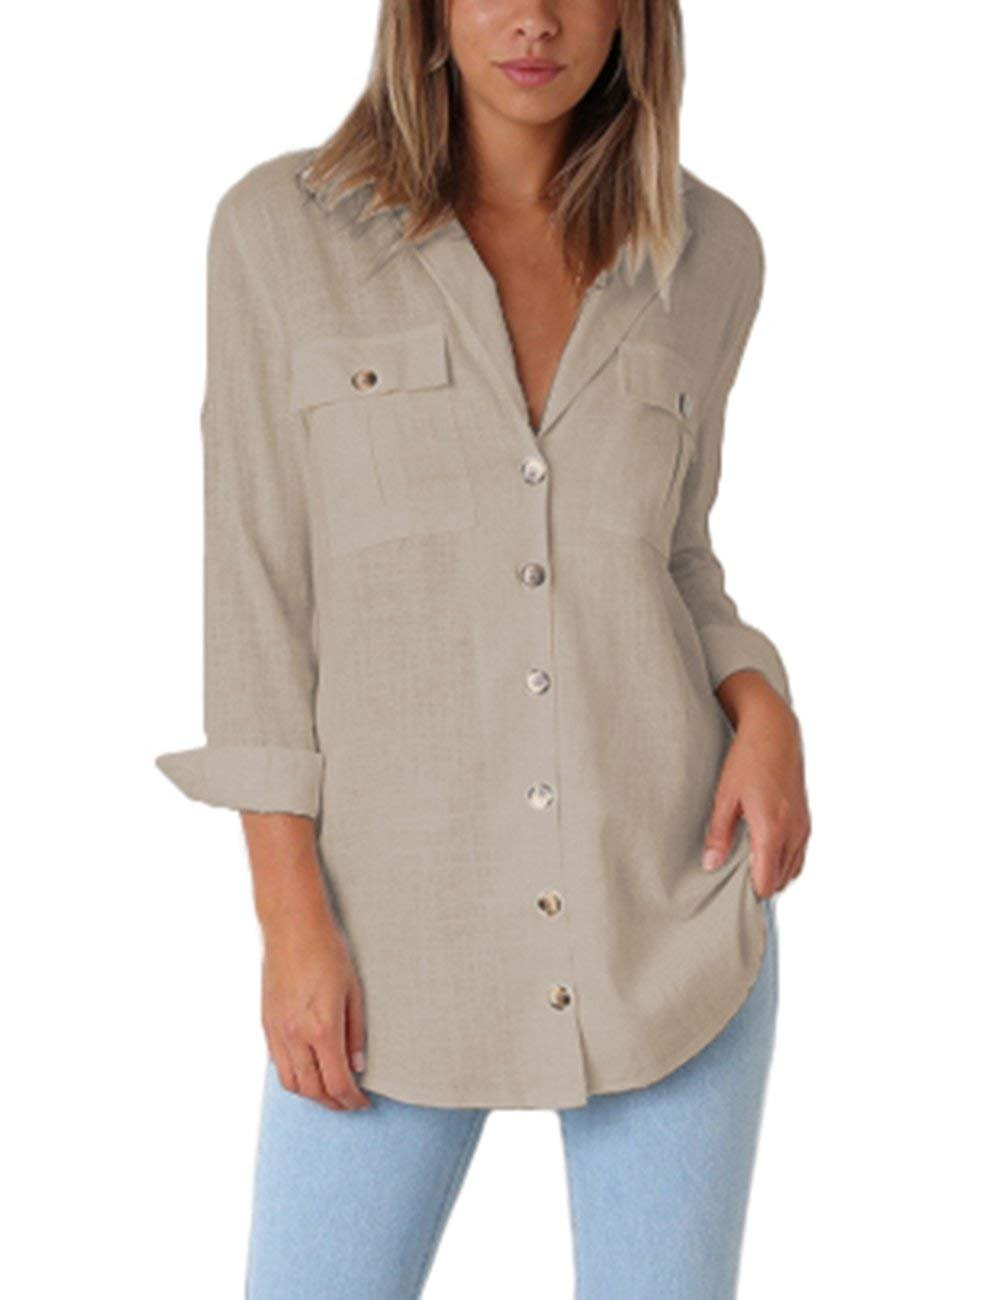 MIDOSOO Womens Button Down V Neck Shirts Loose Fitting Long Sleeve Henley Shirts Tops Two Front Pockets Khaki XL